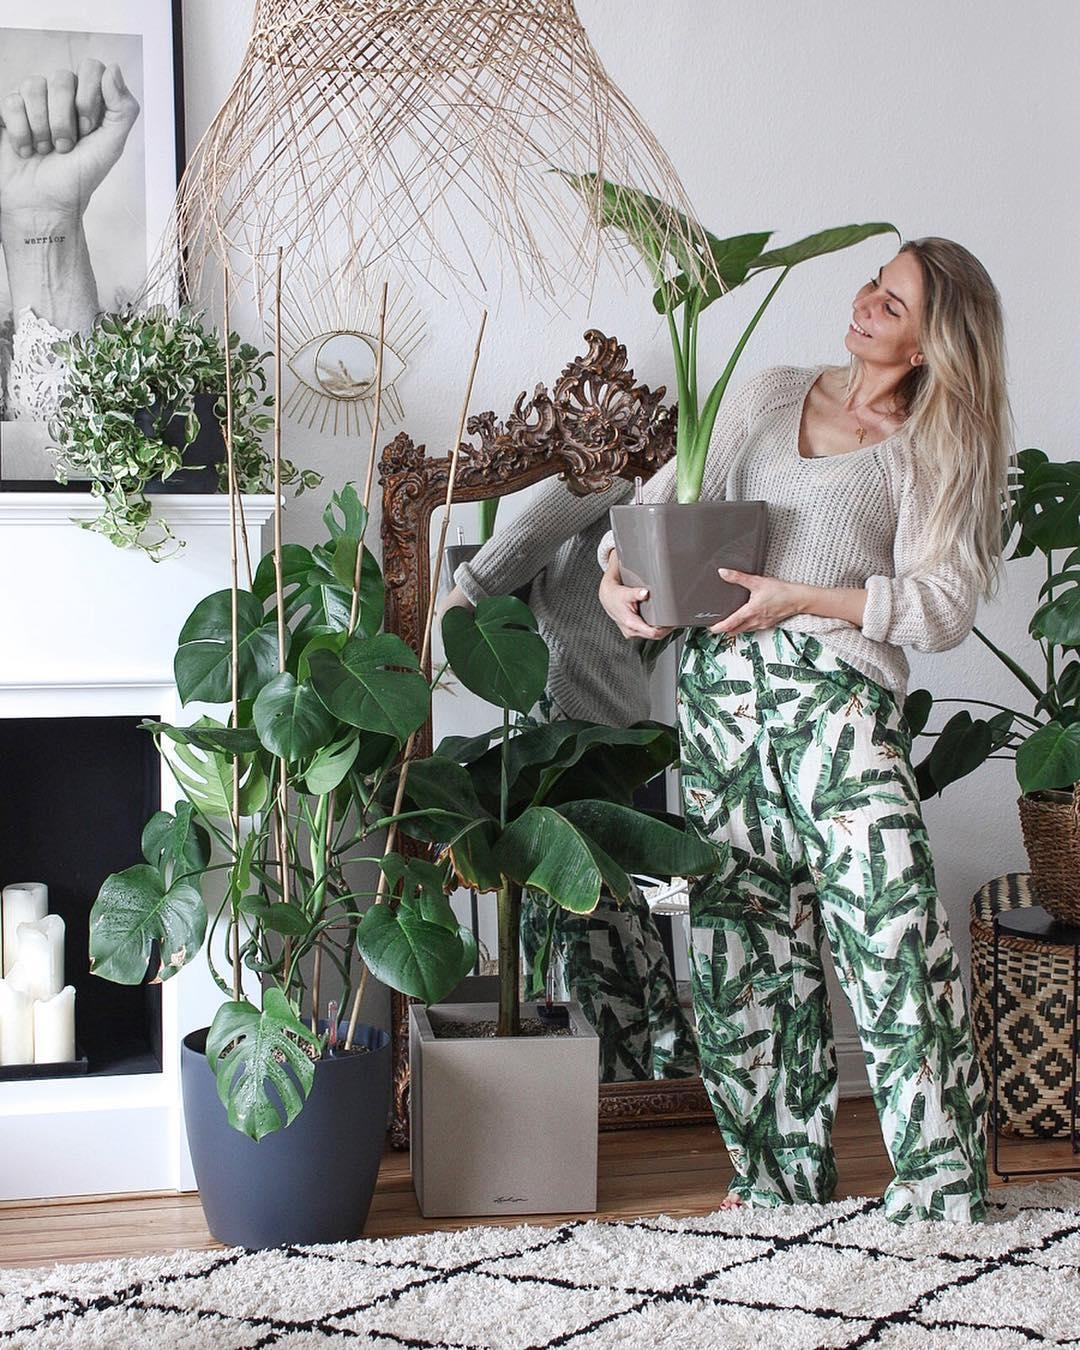 Plants are my friends pflanzen pflanzenliebe plantlover plantgang monstera couchstyle gruen livingchallenge  2243fad1 fcfb 4ee5 a6c0 e8669aad8562